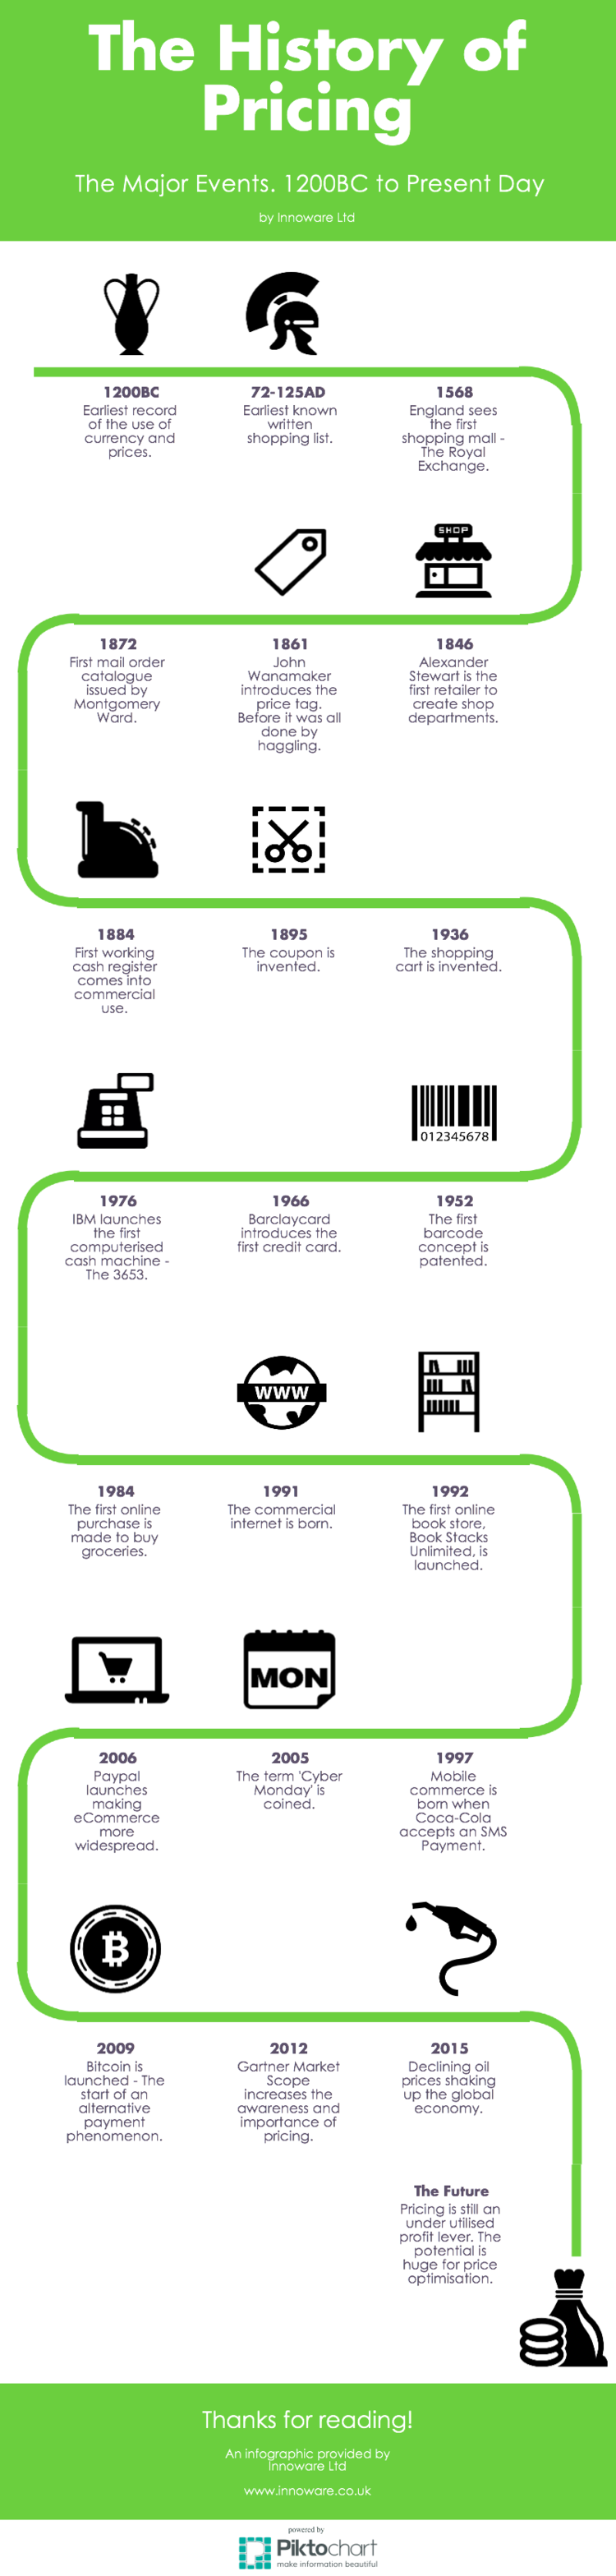 The History of Pricing